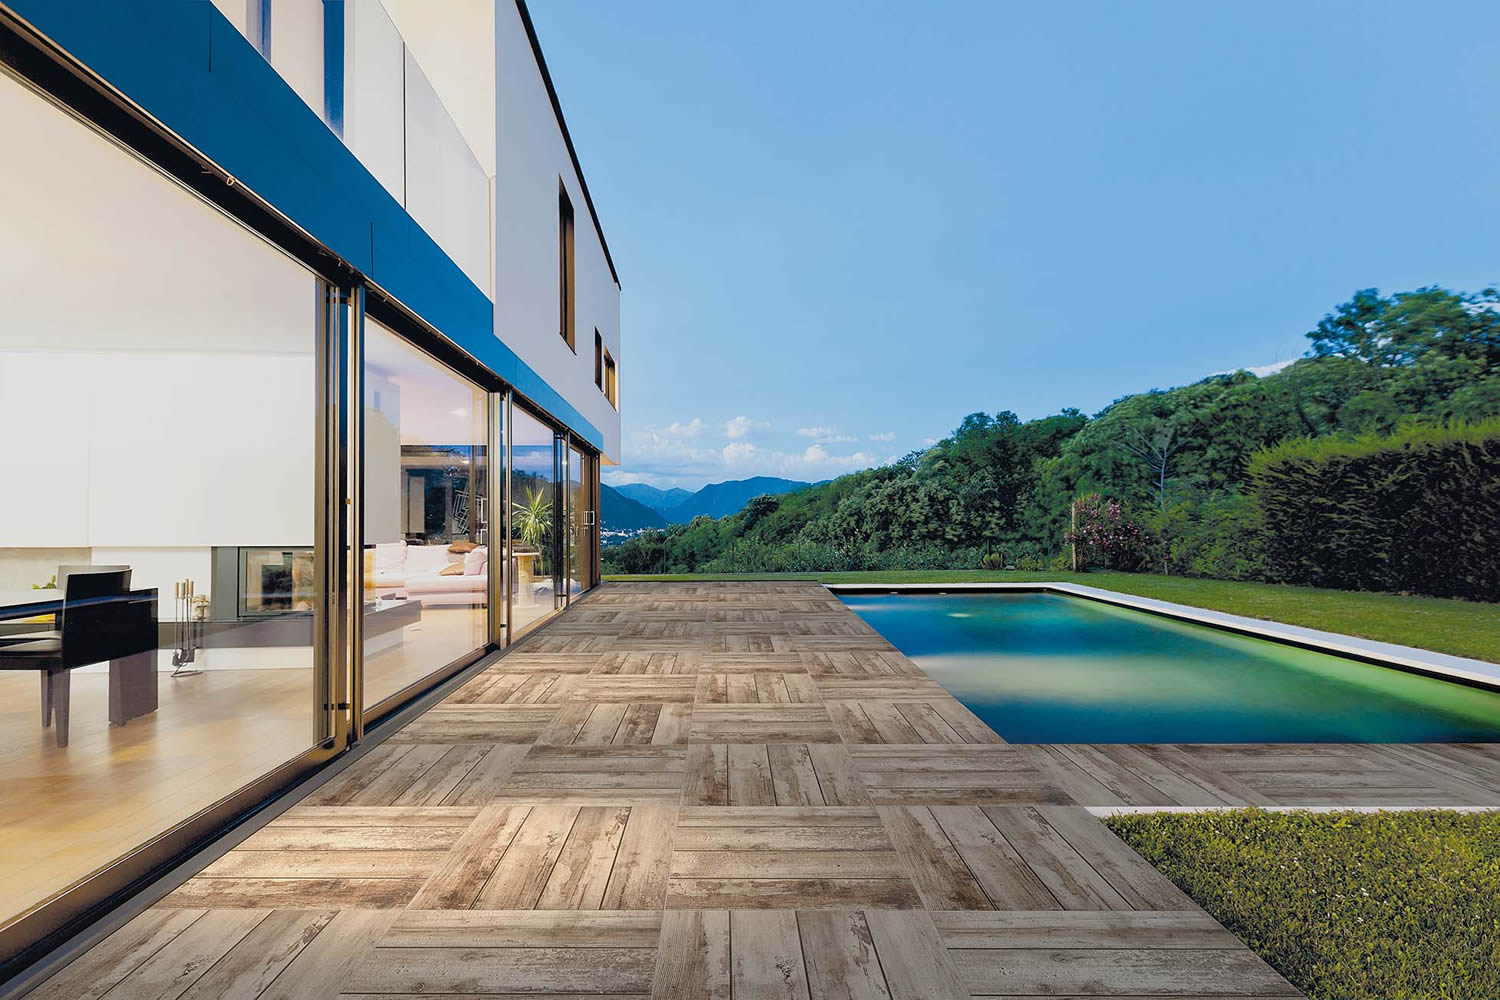 About Us Tile Company Based In San Diego California Wholesale